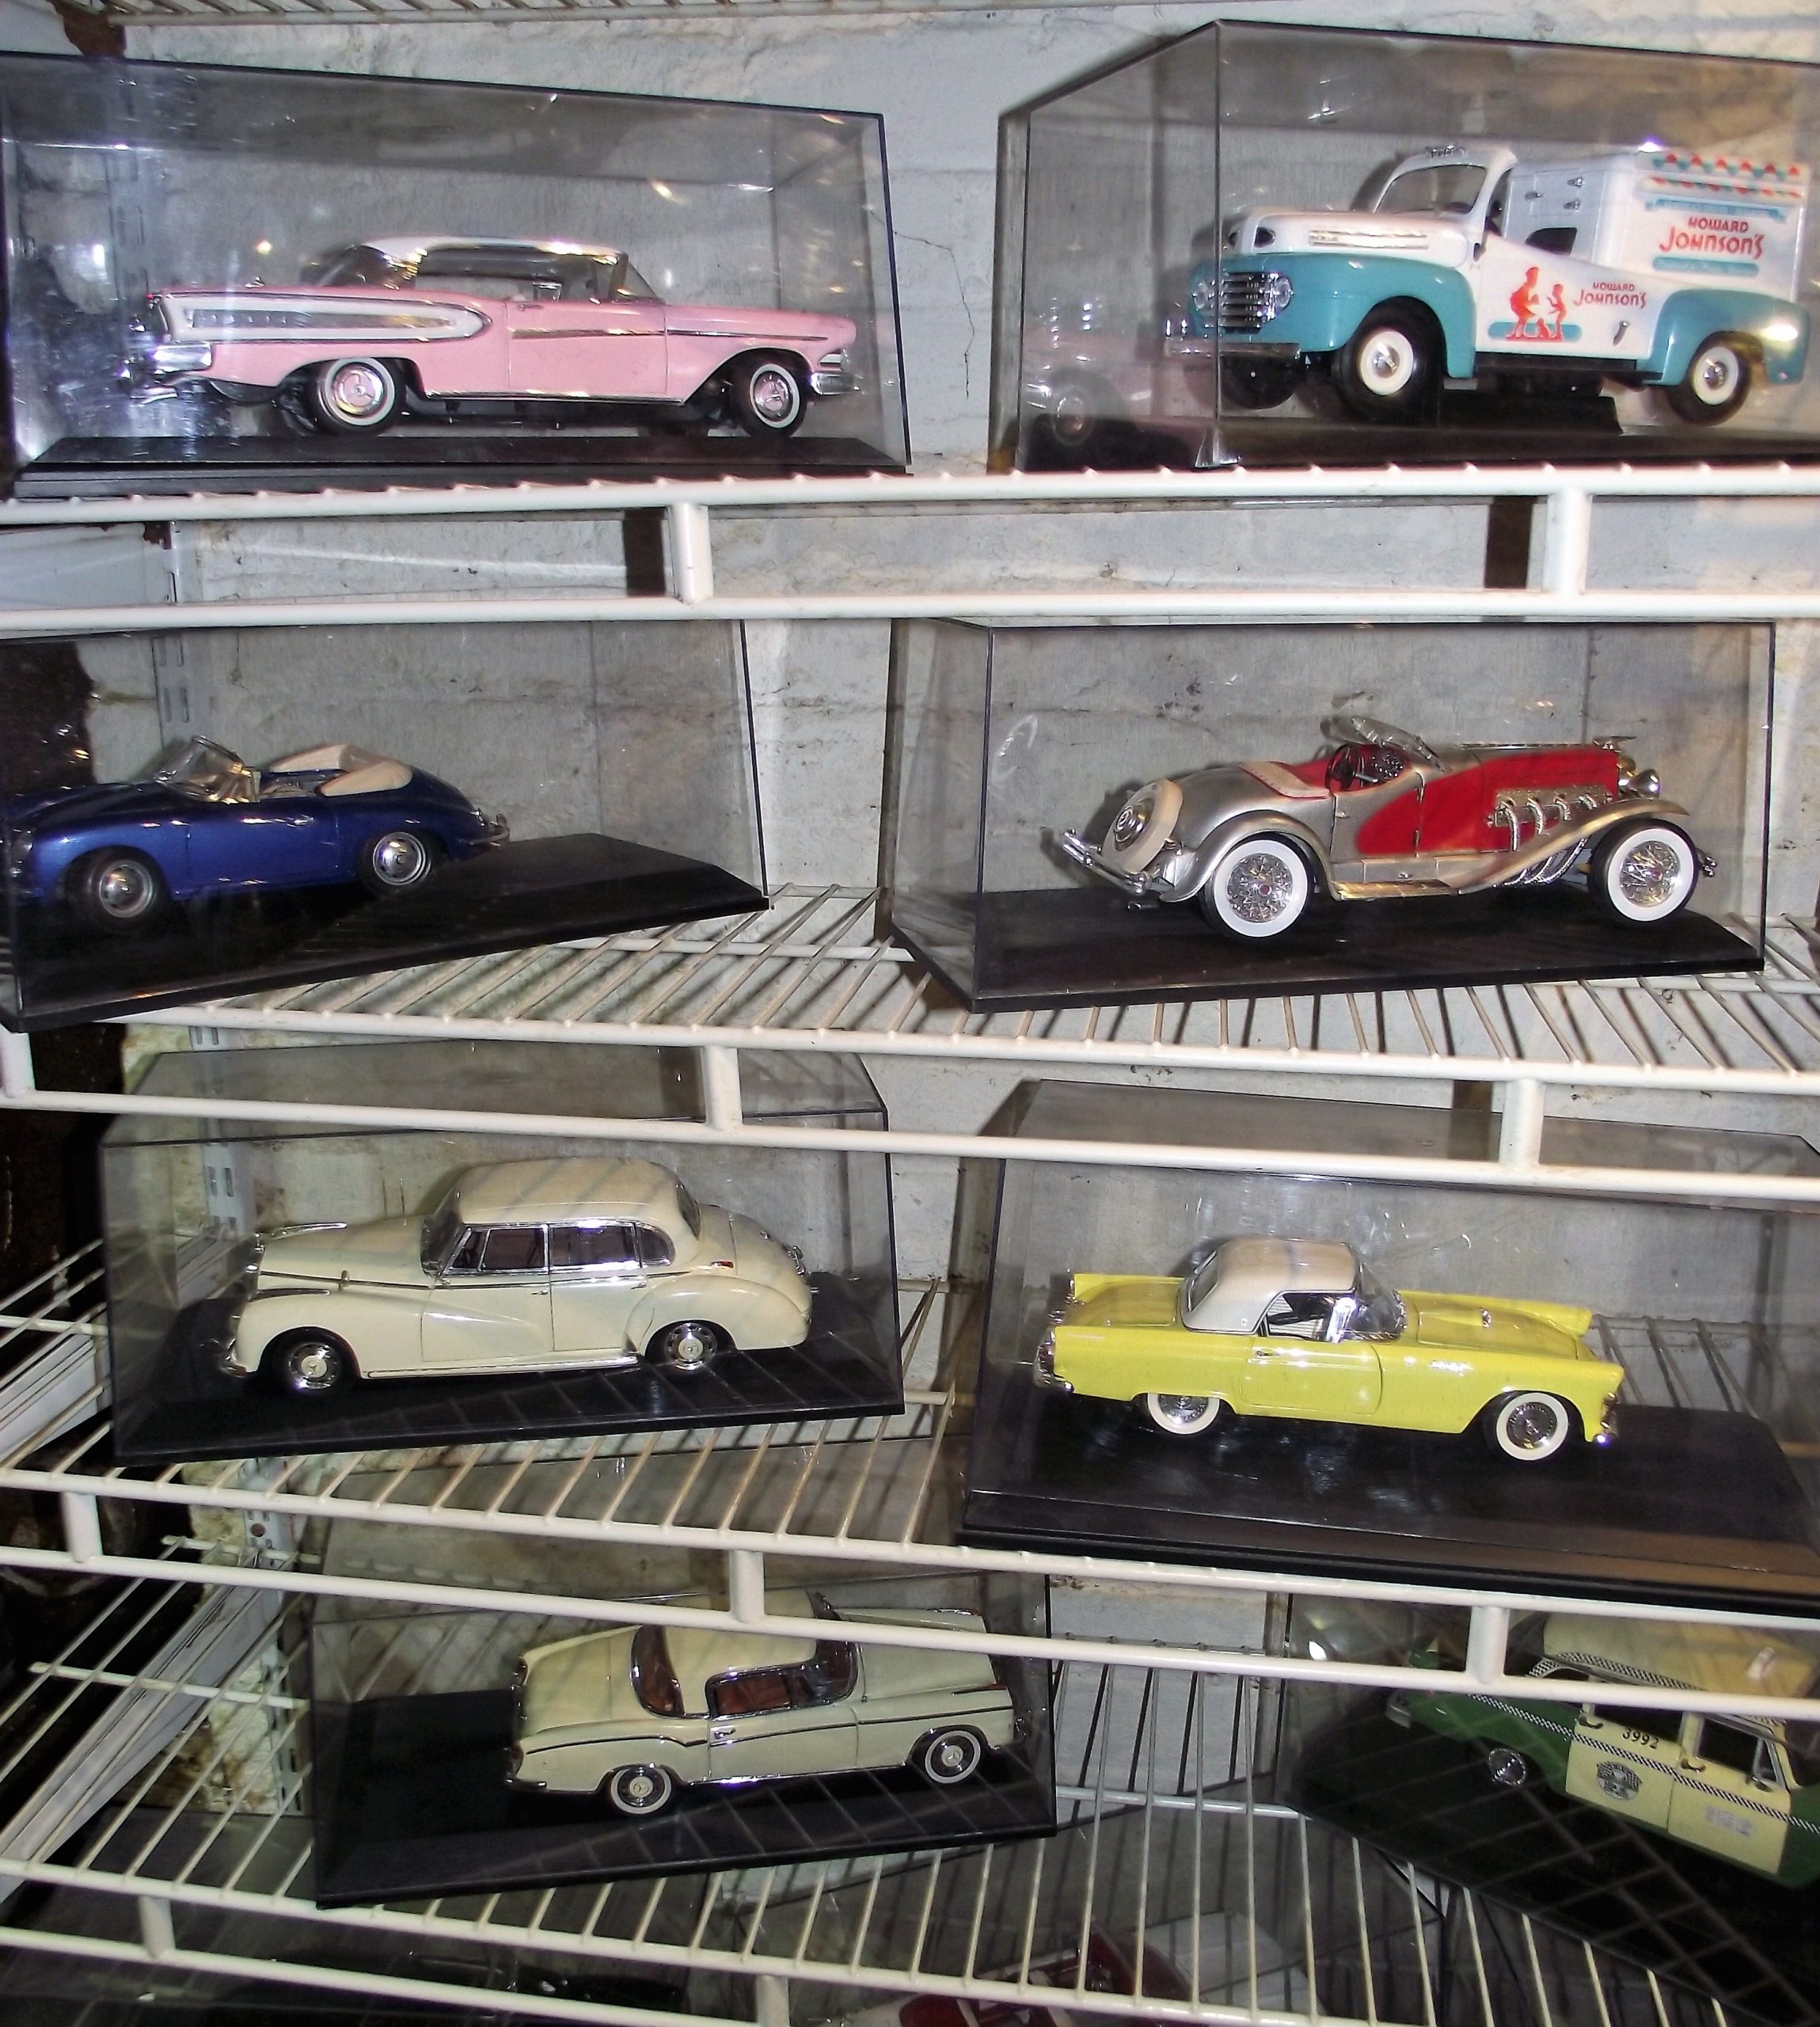 Lower Level Cars and Hood Ornaments